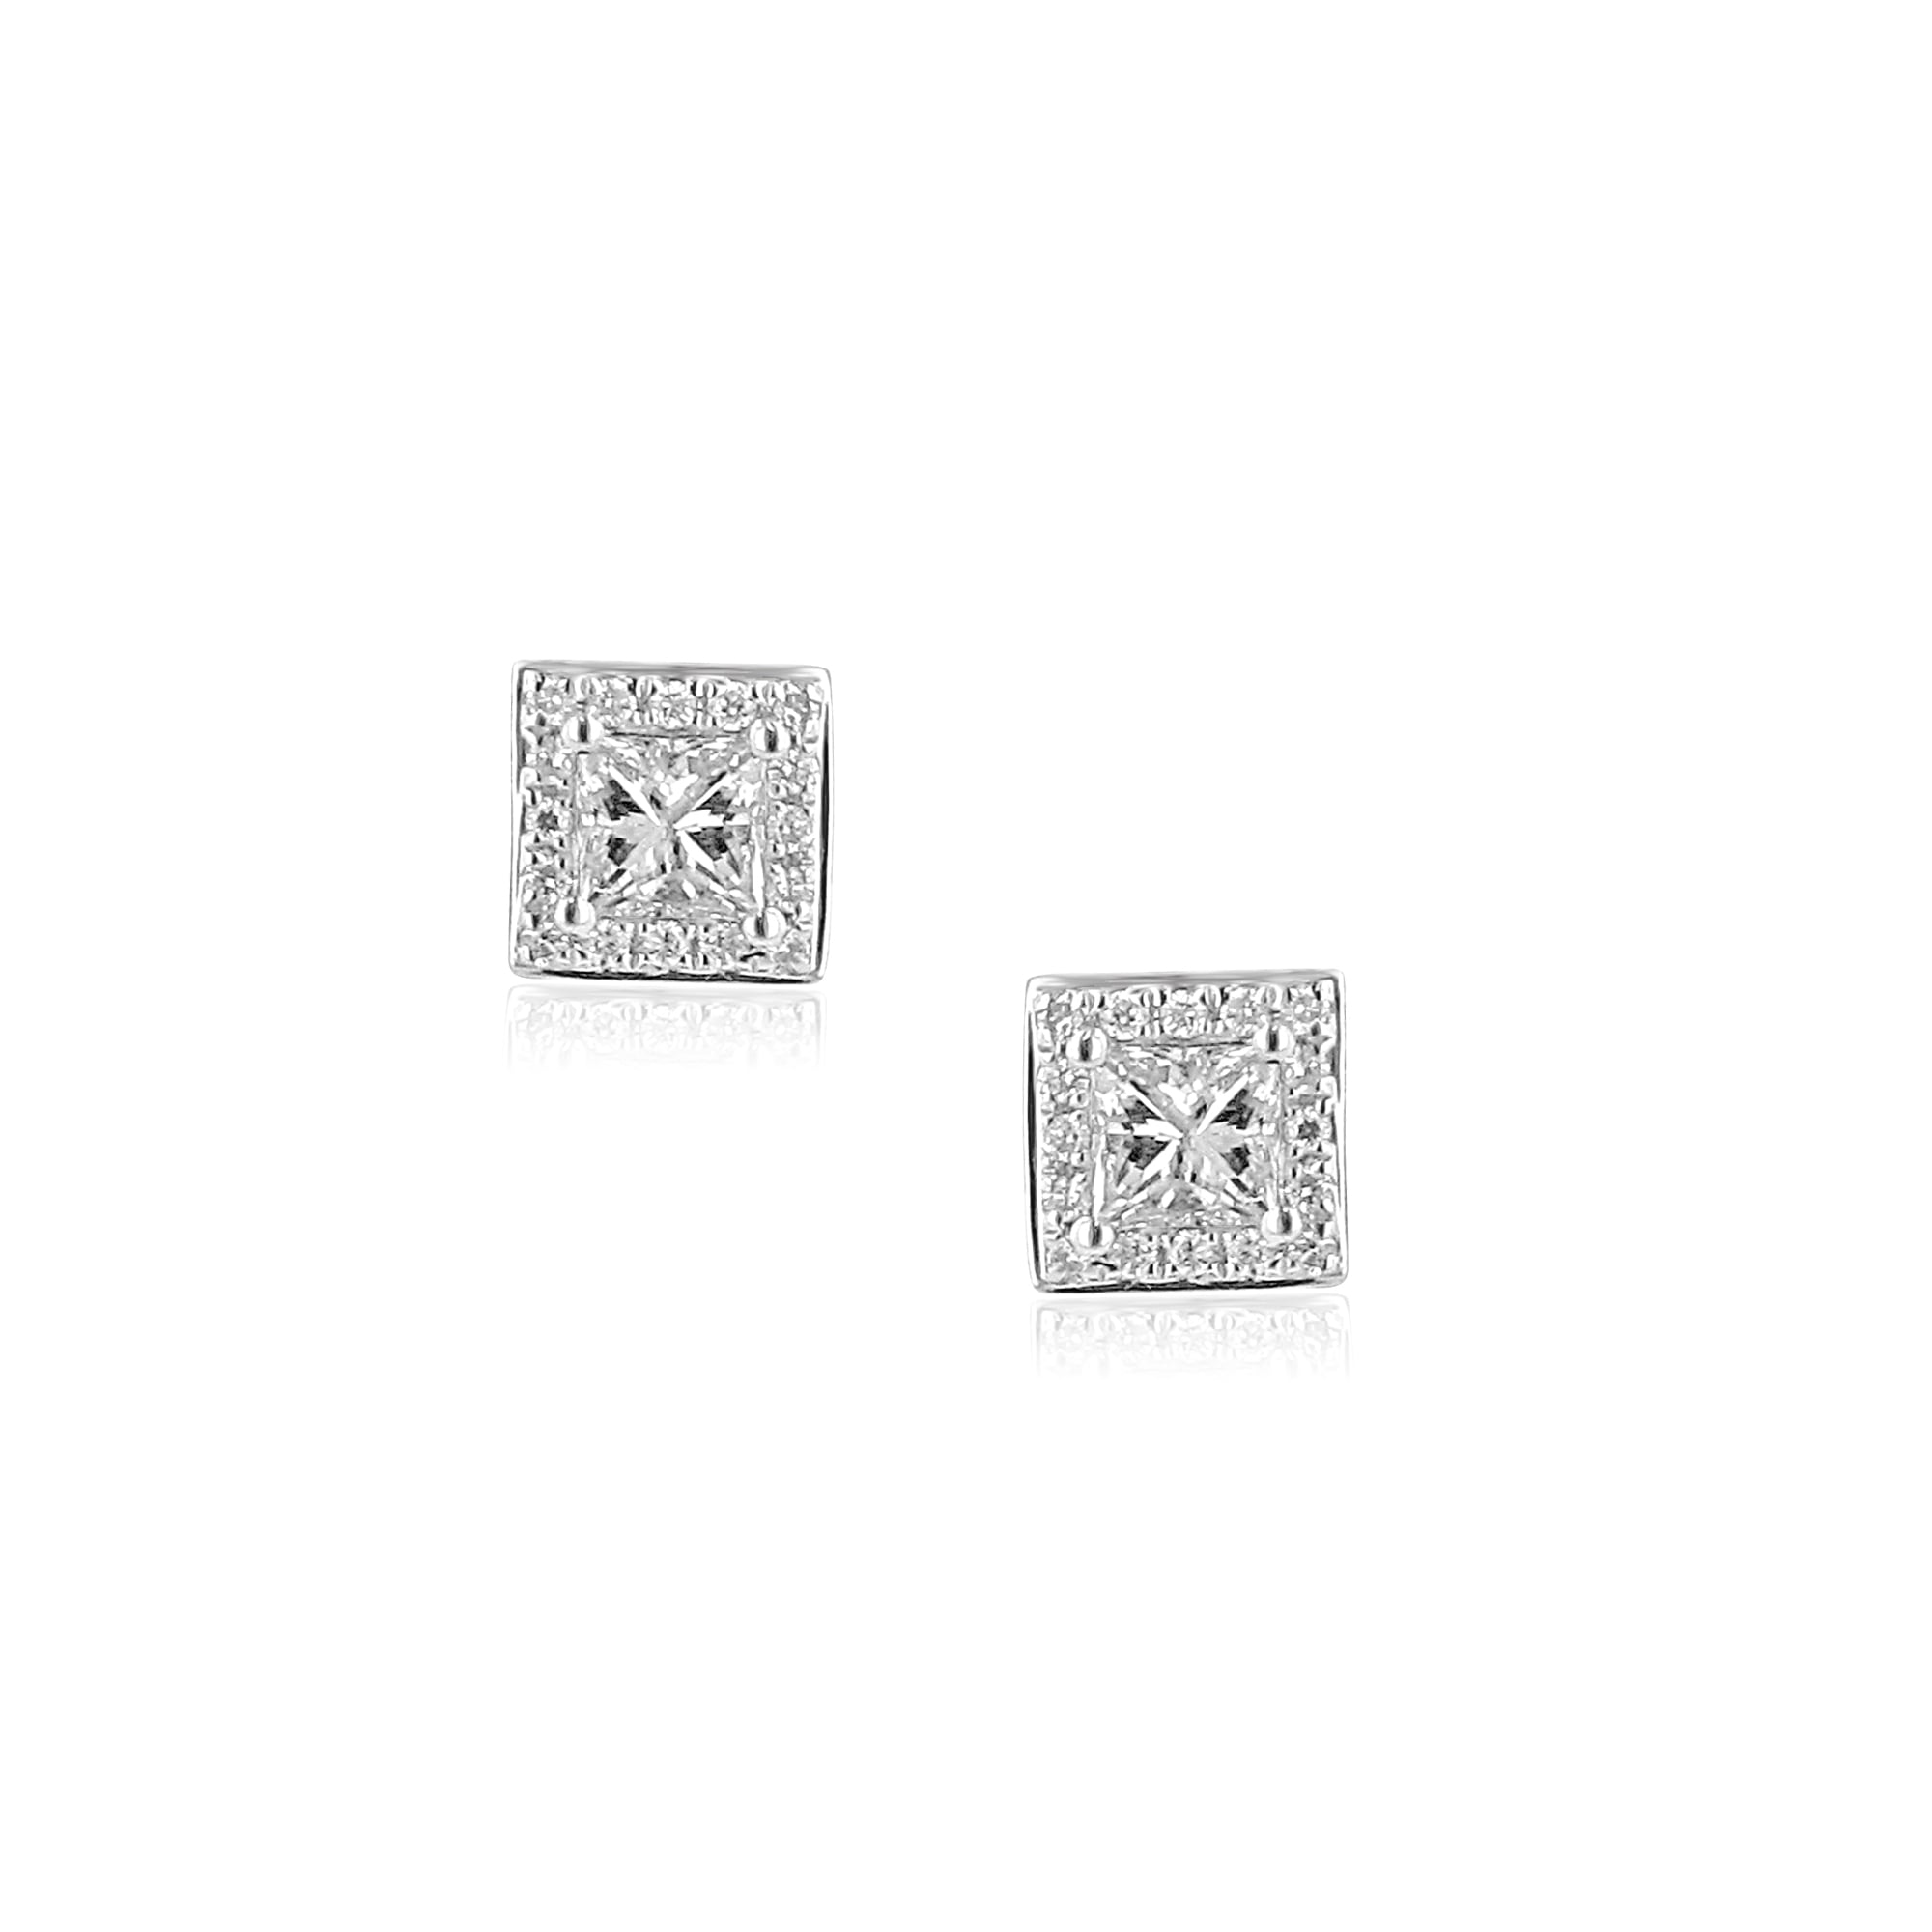 gold diamond comparison latest cttw earrings beauty in square gem stud deals studs certified groupon or goods gg